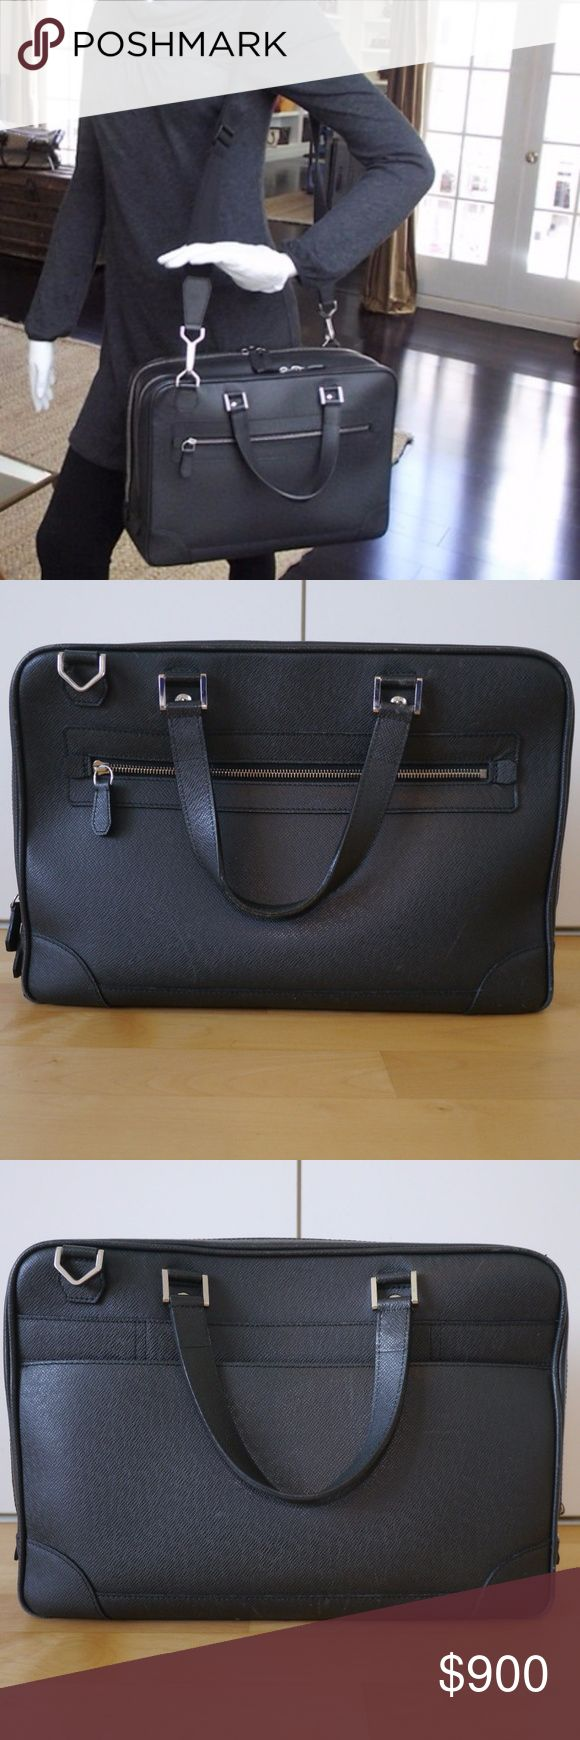 Authentic Louis Vuitton Alexander Briefcase M31162 100% Authentic Real Genuine LV Louis Vuitton  Briefcase Computer Laptop Attache Bussiness Messenger Bag  Condition: Good Used Condition (see pics, scuffs) Unisex Mens / Womens  Style M31162  Size Alexander 15.7x11.8x4.9 Color Black Ardoise (Black / Grey) Made In France Taiga Grained Leather  **Strap included but No Lock or Key,  2 scuffs on outside corners**  Features several compartments, 1 for a laptop 1 for a4 documents. Handheld or…